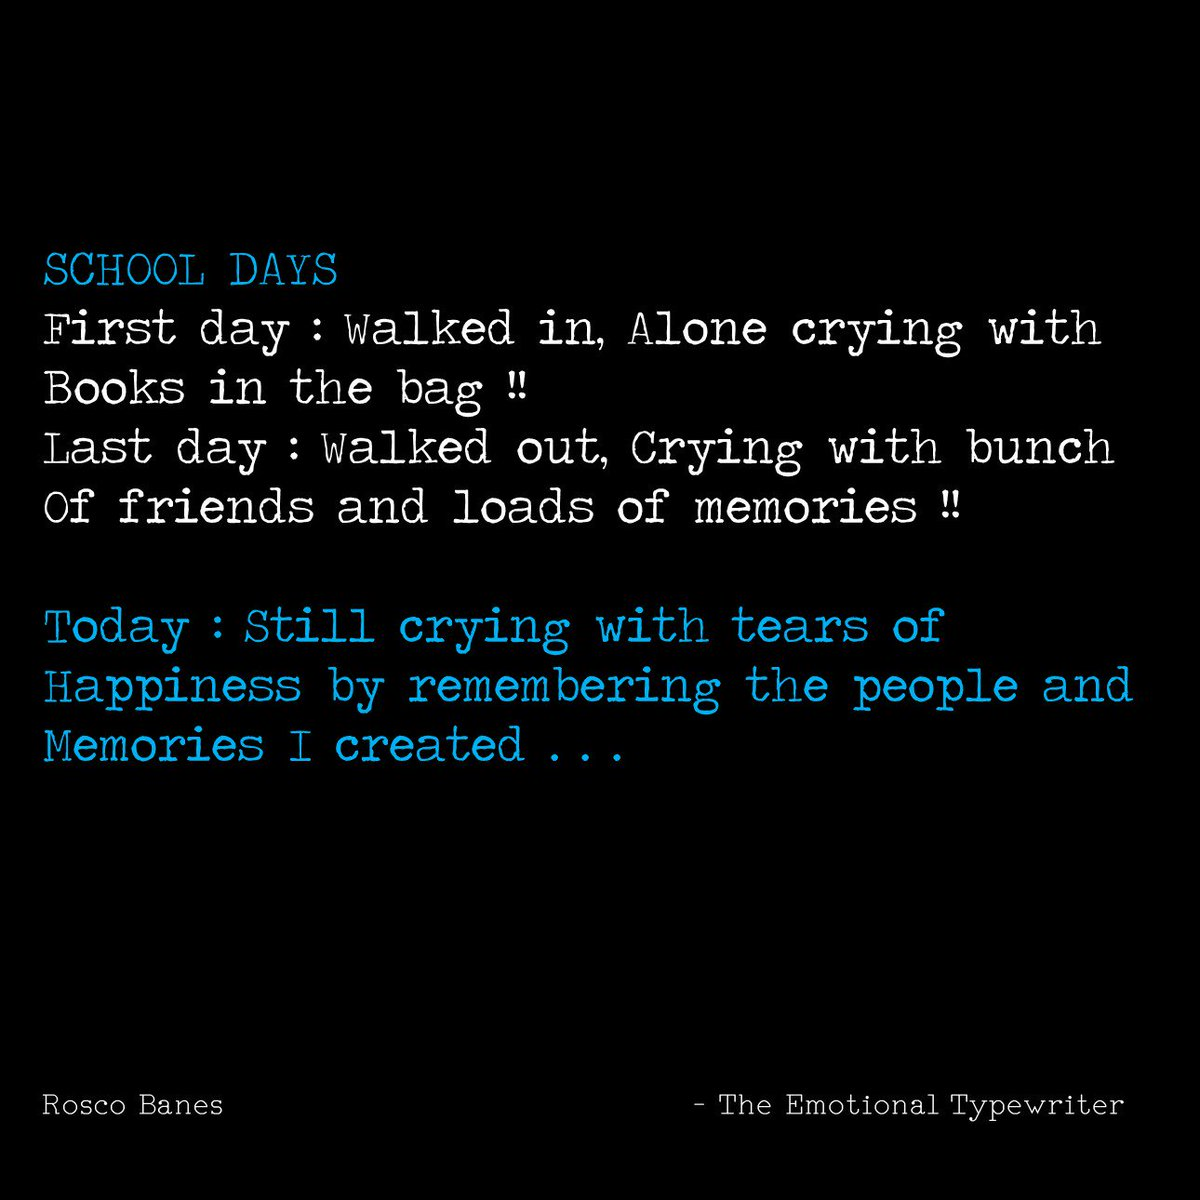 Emotionaltypewriter On Twitter School Days Quotes